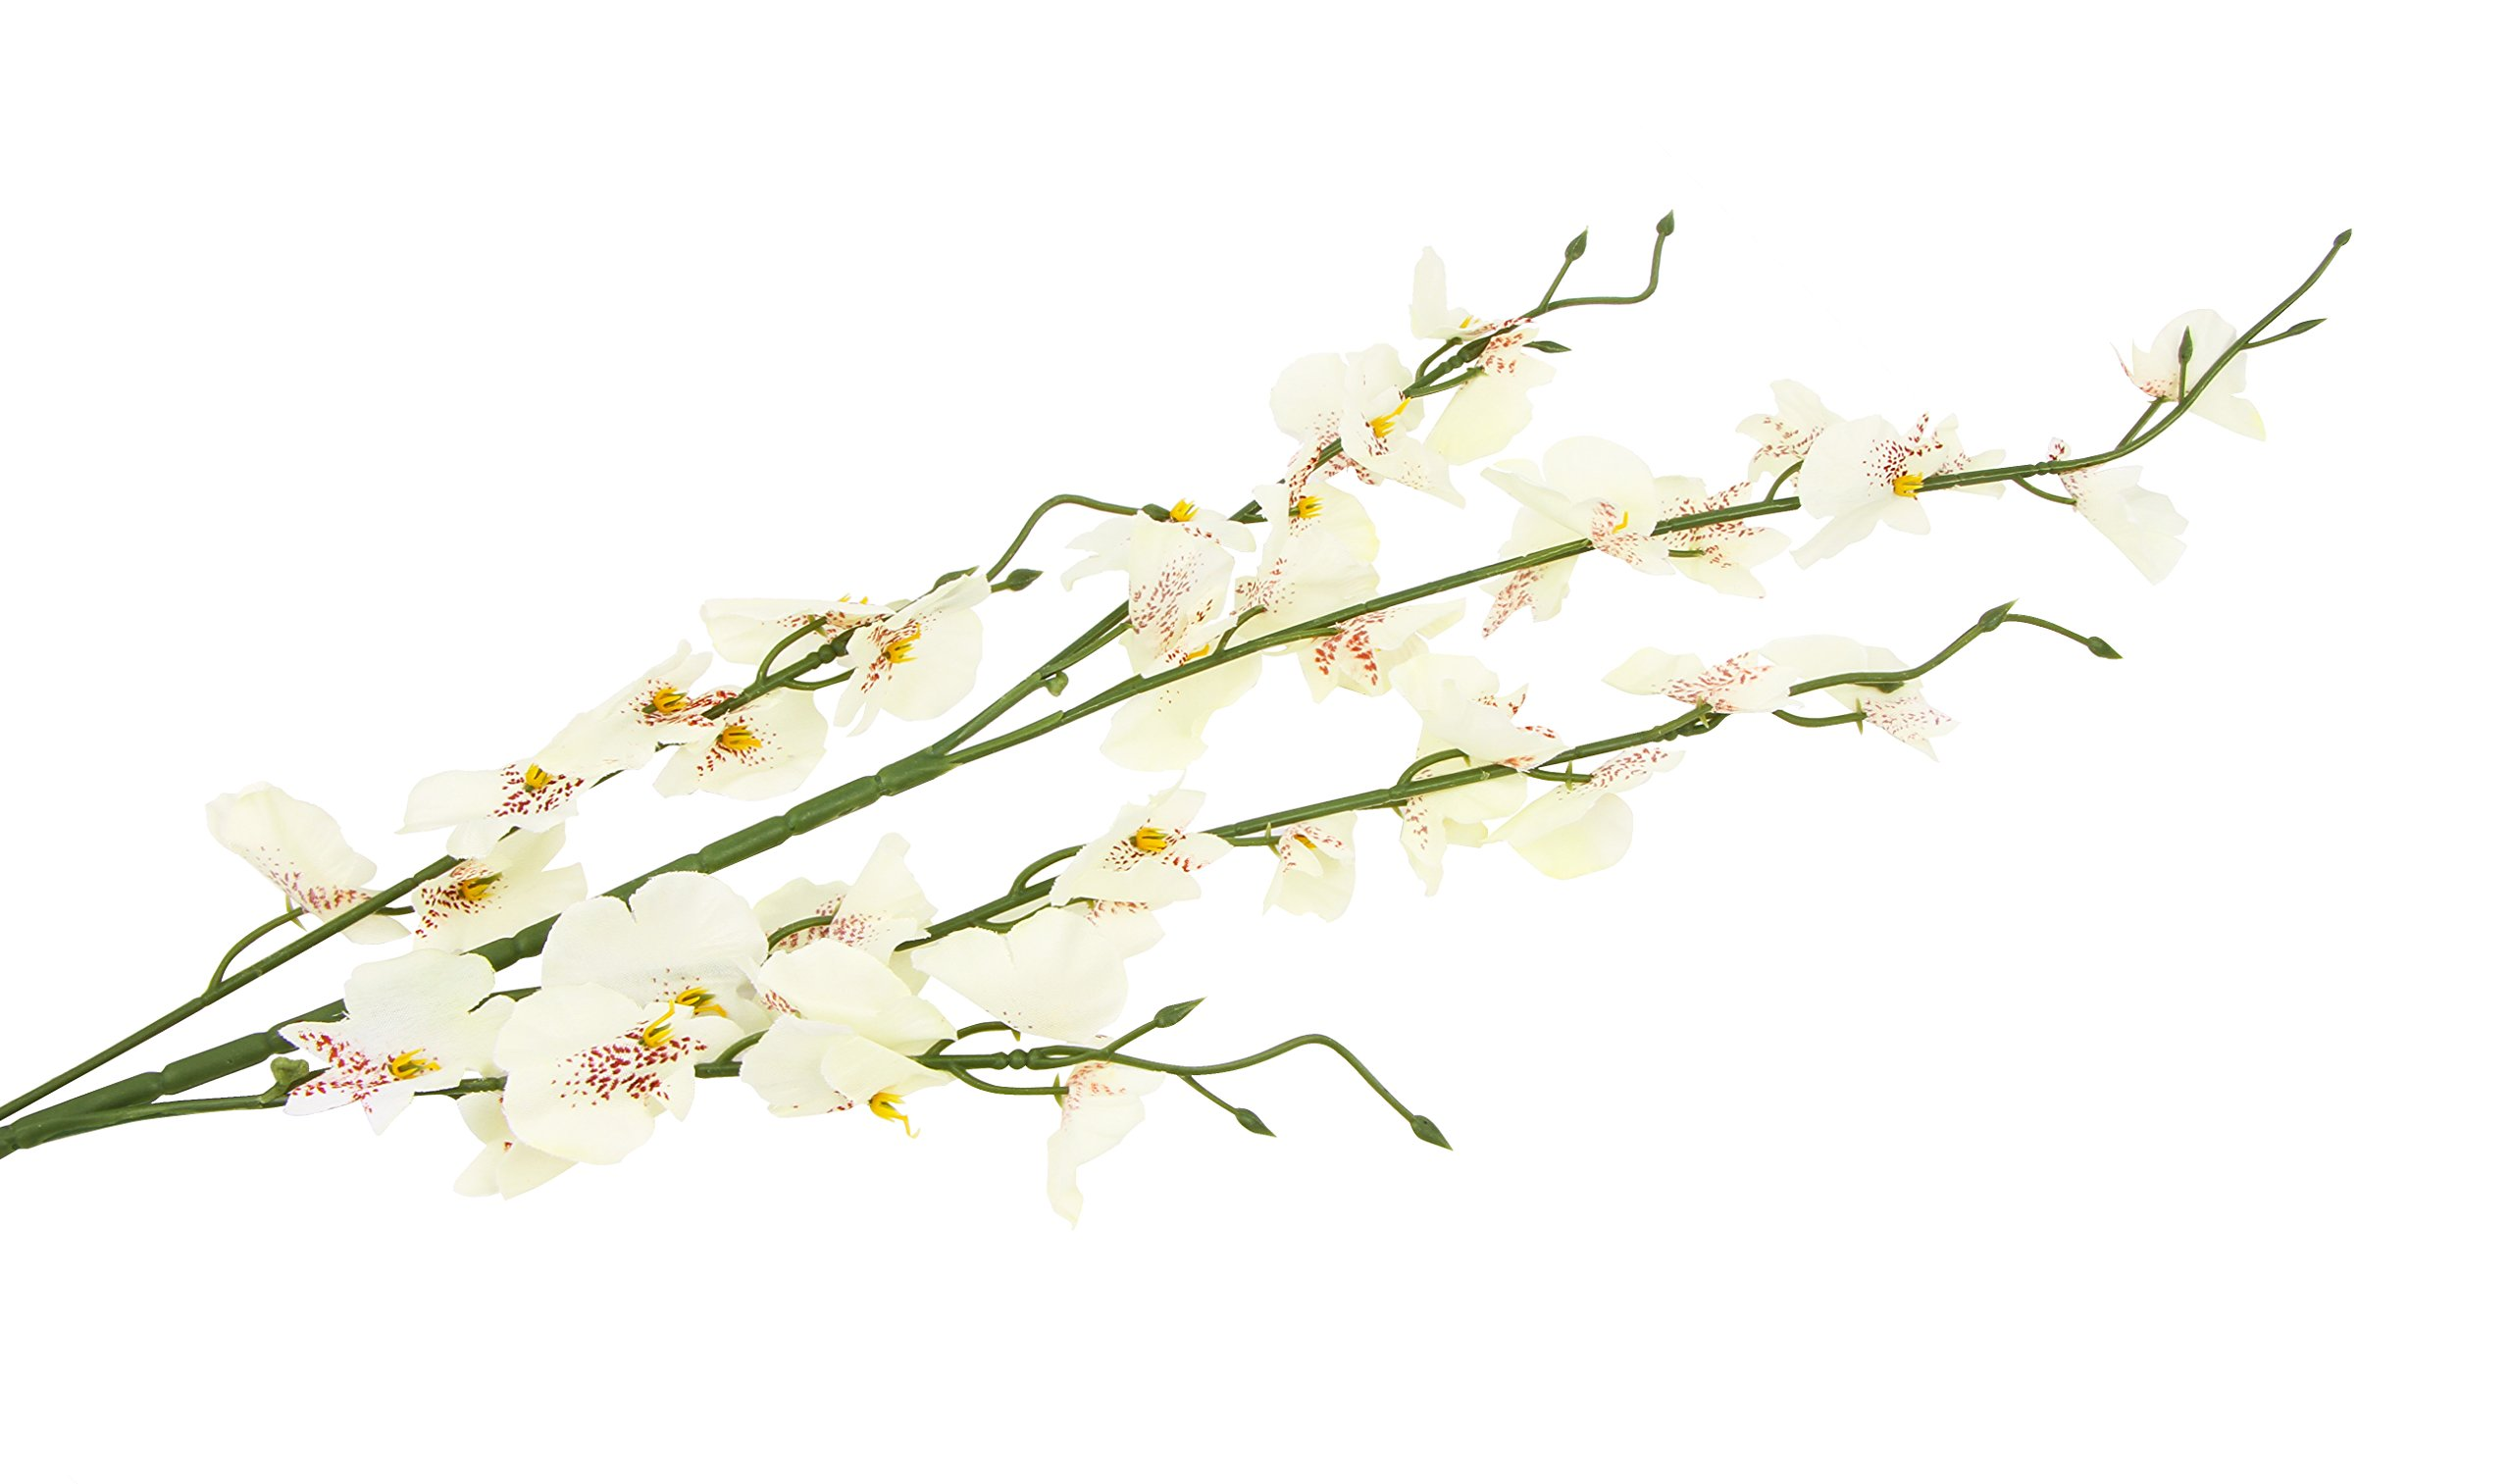 TYEERDEC-Artificial-Orchids-Flowers-10-Pcs-Silk-Fake-Orchids-Flowers-in-Bulk-Orquideas-Flowers-Artificial-for-Indoor-Outdoor-Wedding-Home-Office-Decoration-Festive-Furnishing-Milky-White